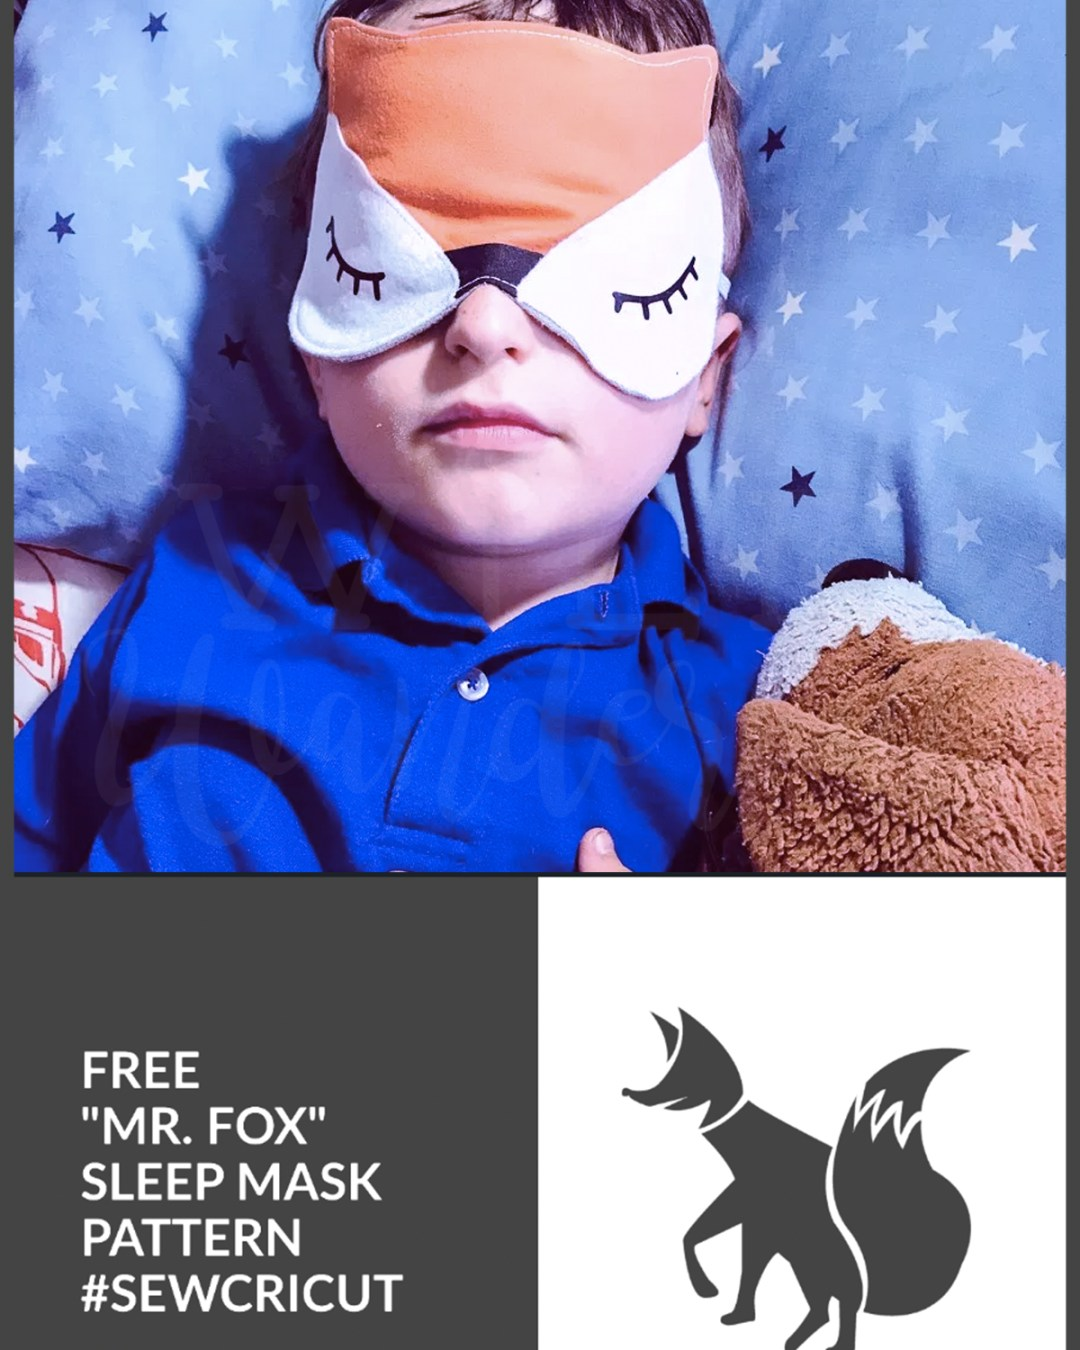 Mr. Fox Sleep Mask :: FREE Sewing Pattern + Cricut Maker File